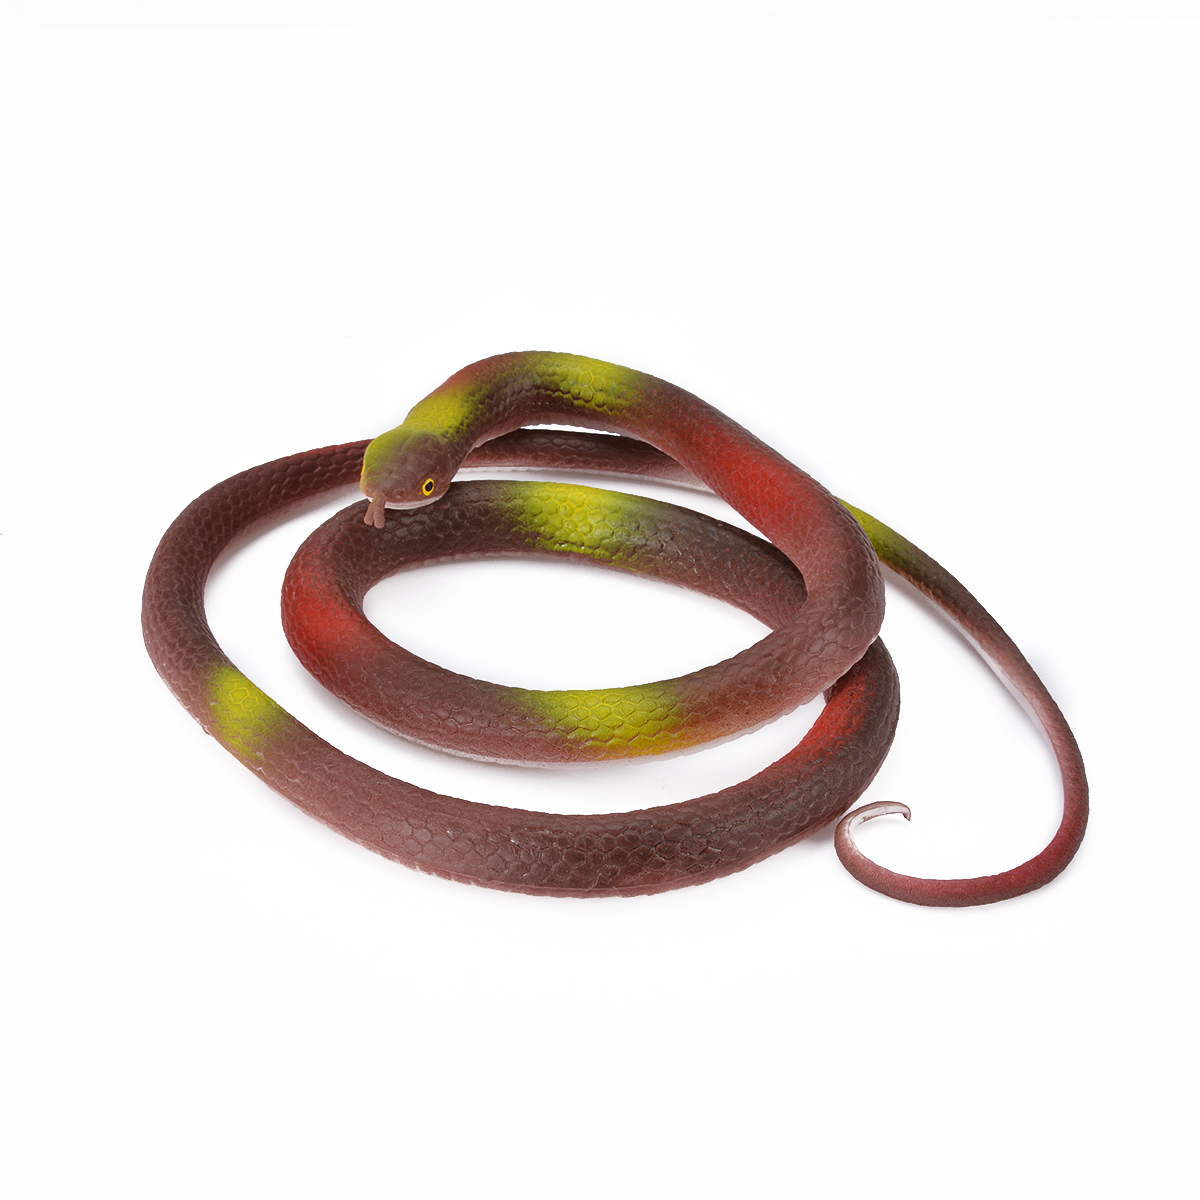 1pcs 120cm High Simulation Rubber Toys Coffee Fake Snakes Scary Snake Model Joke Prank Props Gift for Halloween Party Decoration